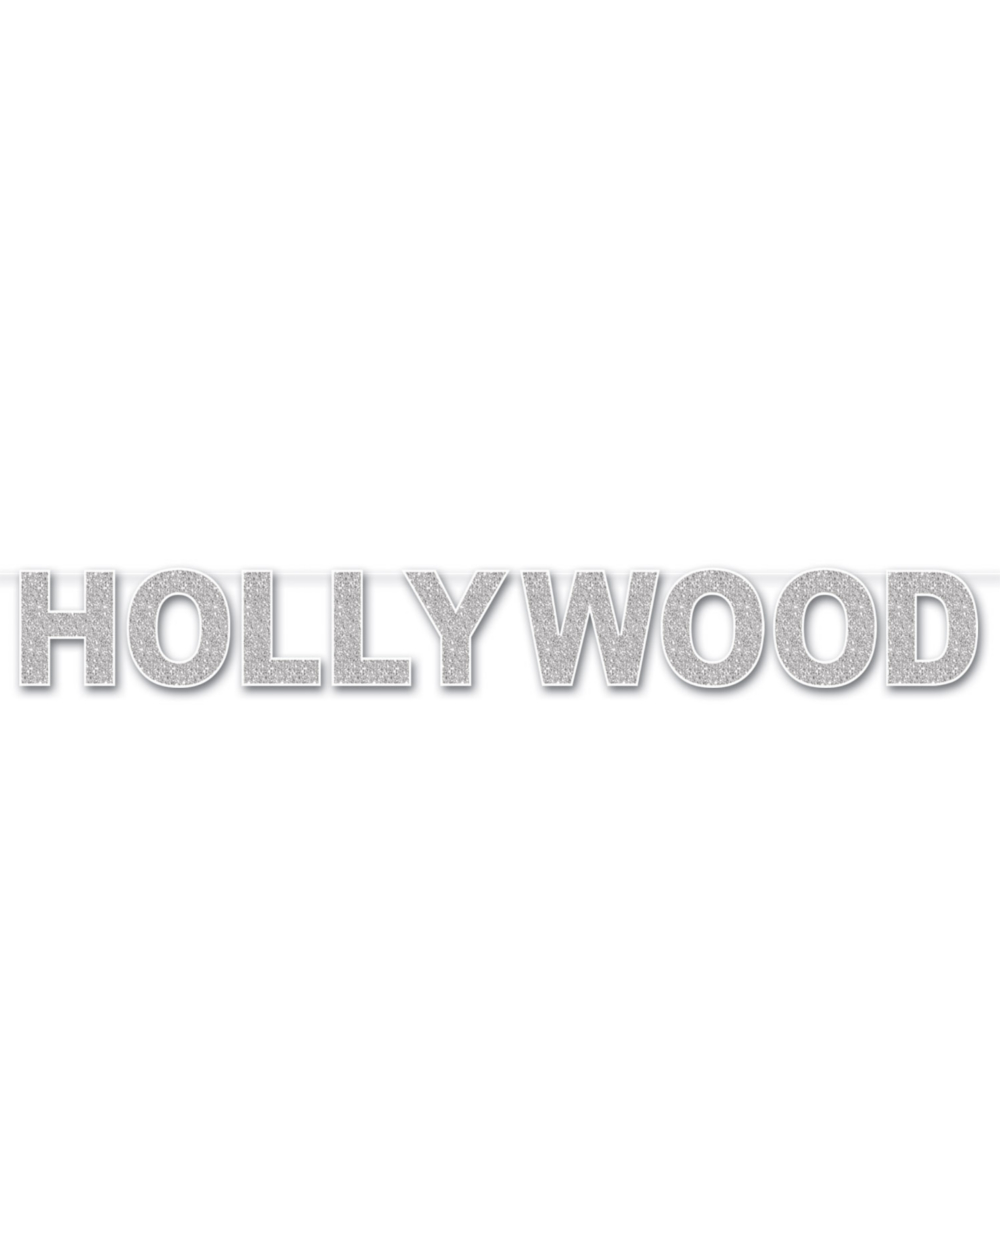 Gold, Hollywood Movie Night Party Glittered Fringe Letter Banner Decoration